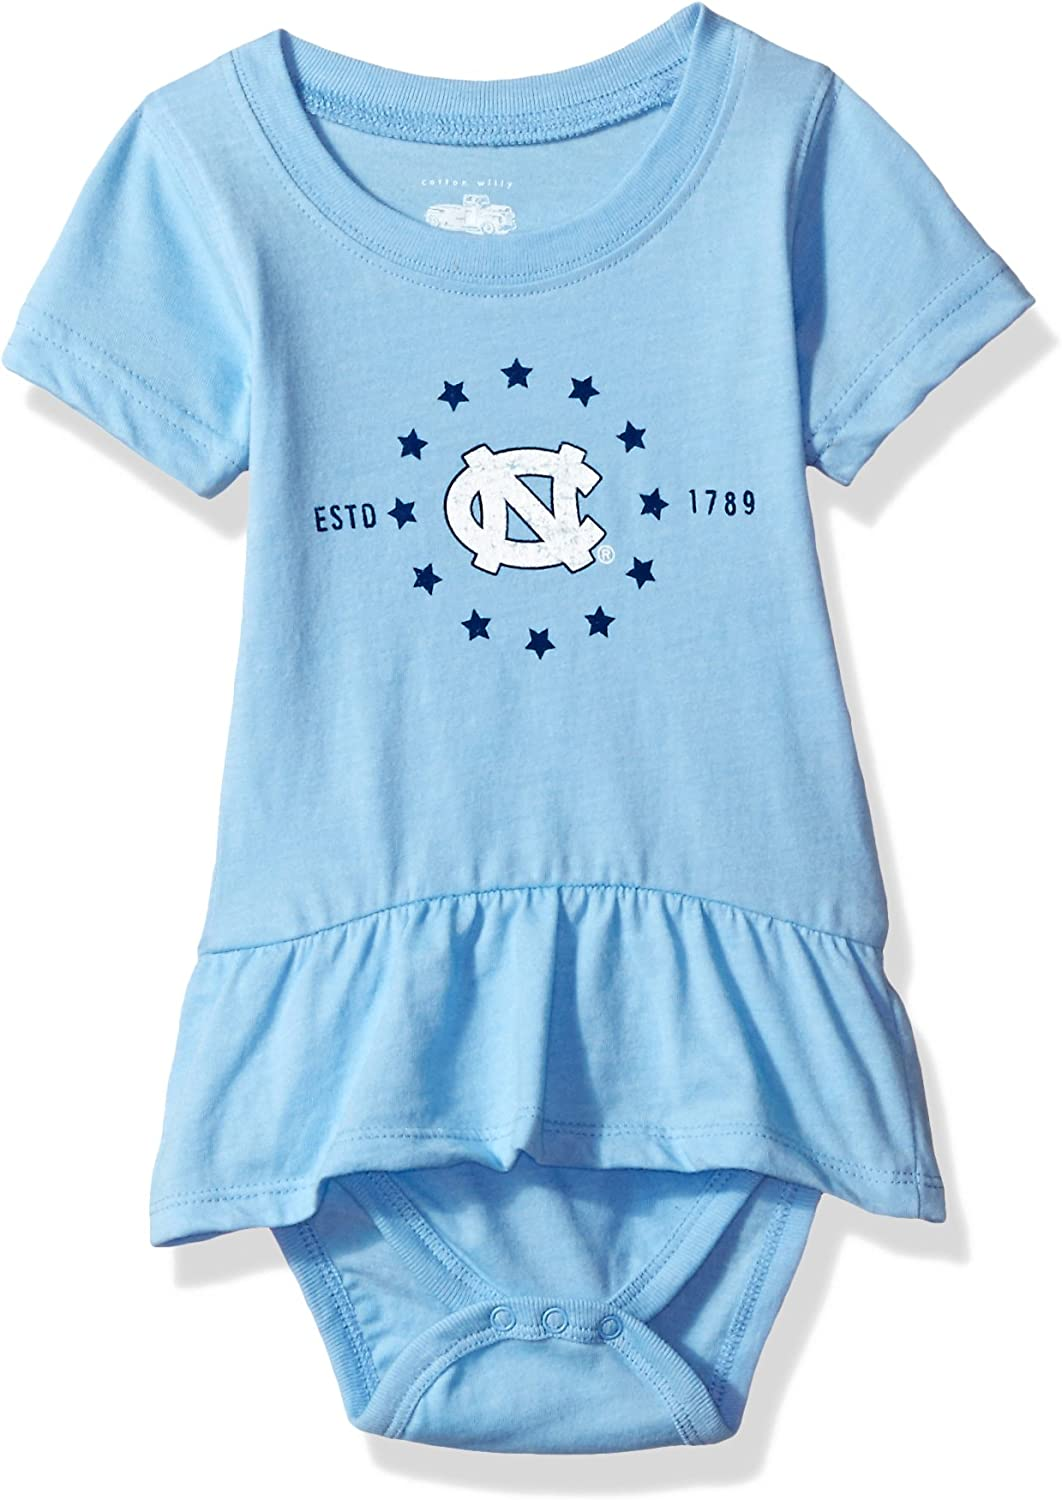 Cotton Willy NCAA Girls Short Sleeve Ruffle Hopper